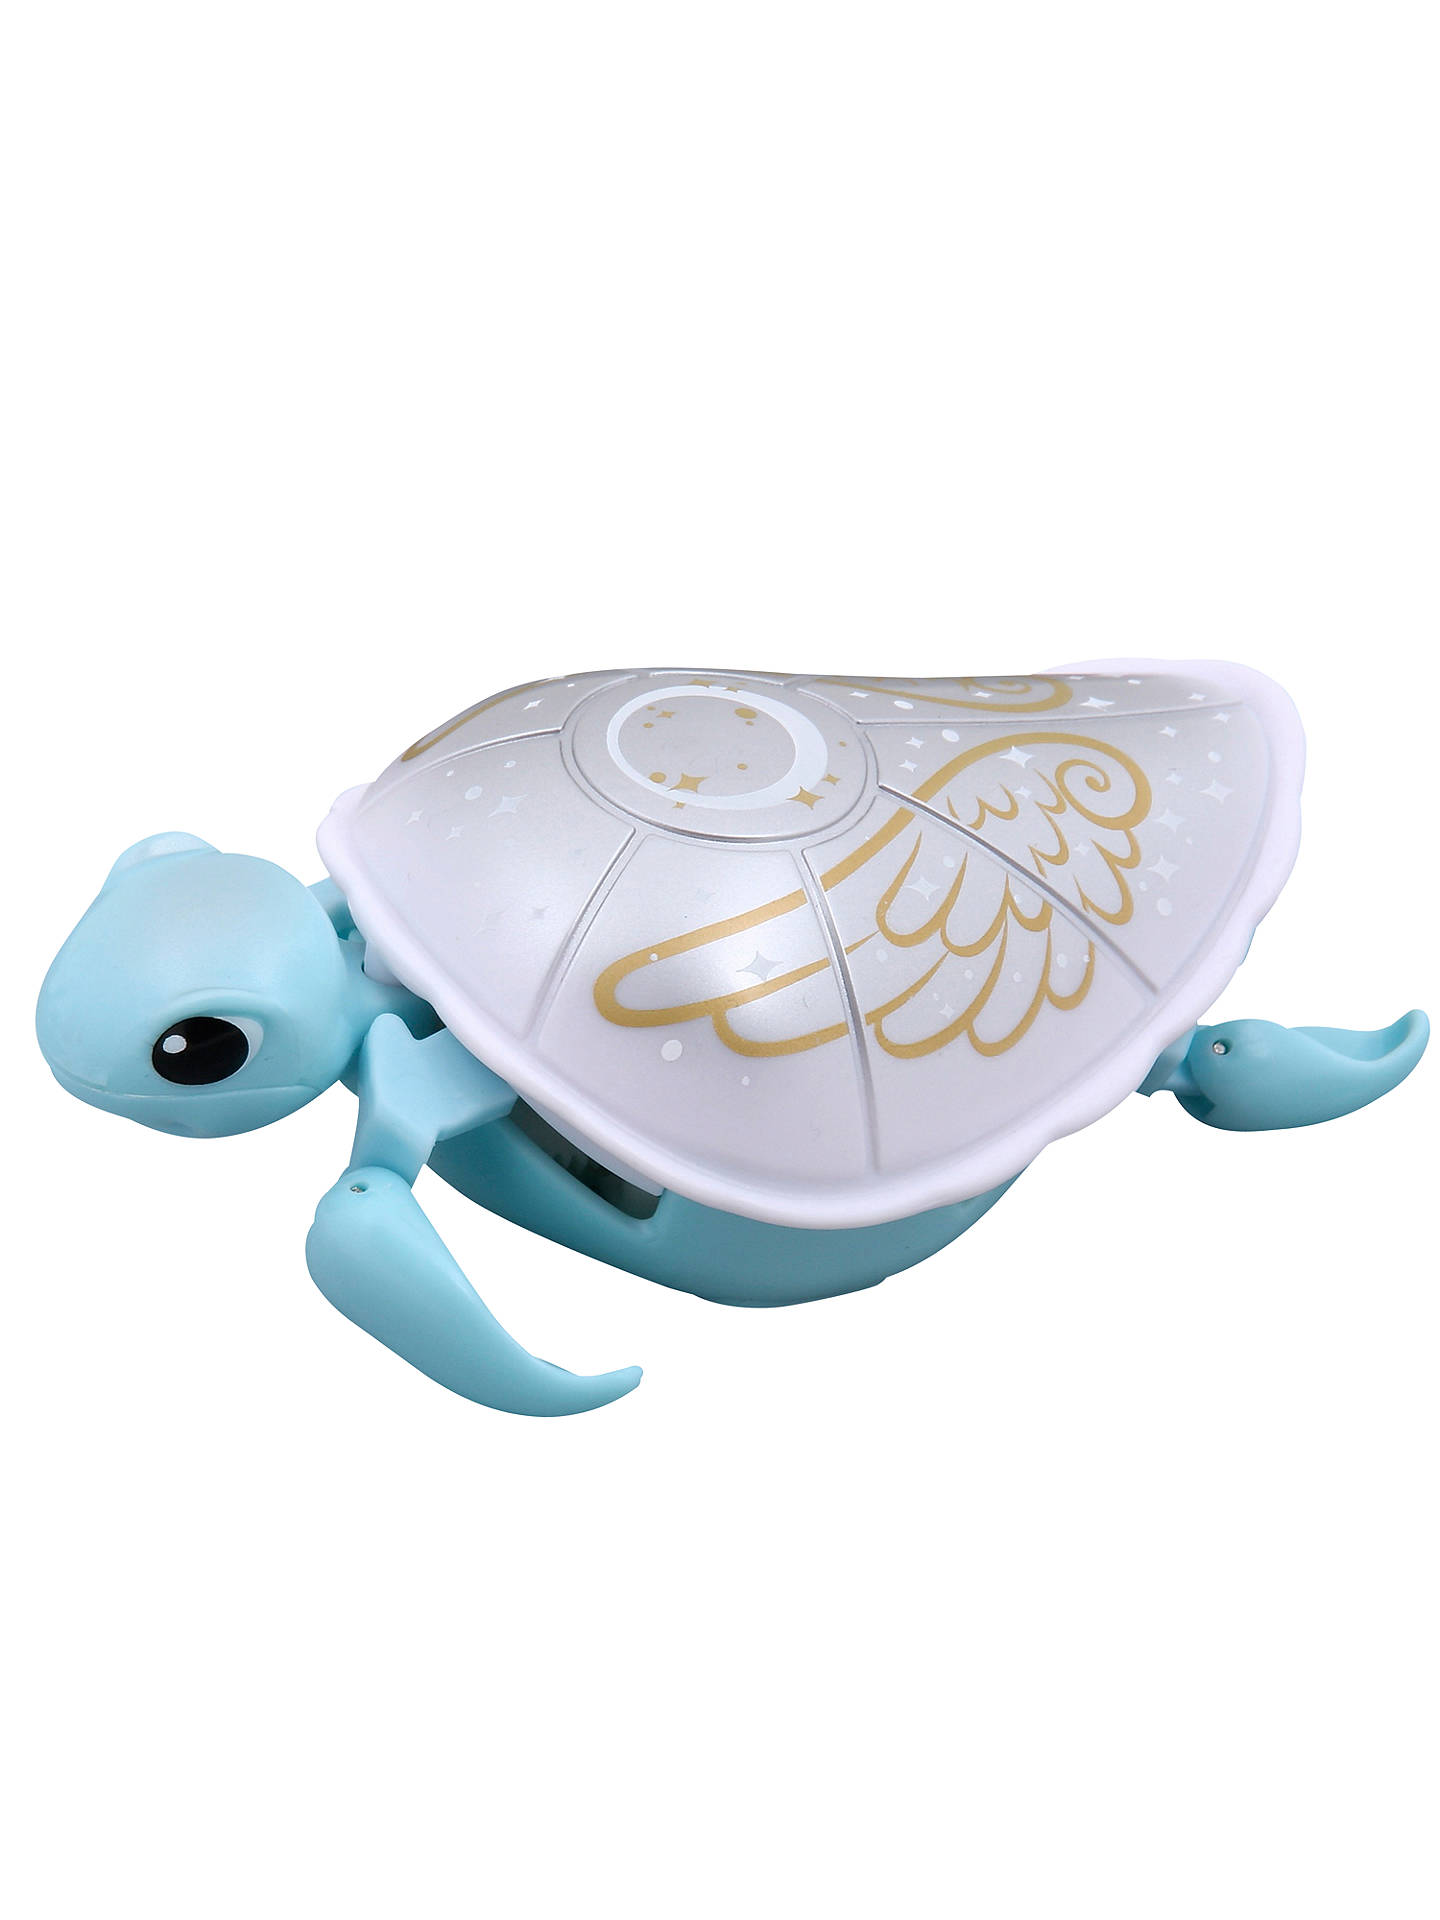 Little Live Pets Lil' Turtle, Assorted at John Lewis & Partners